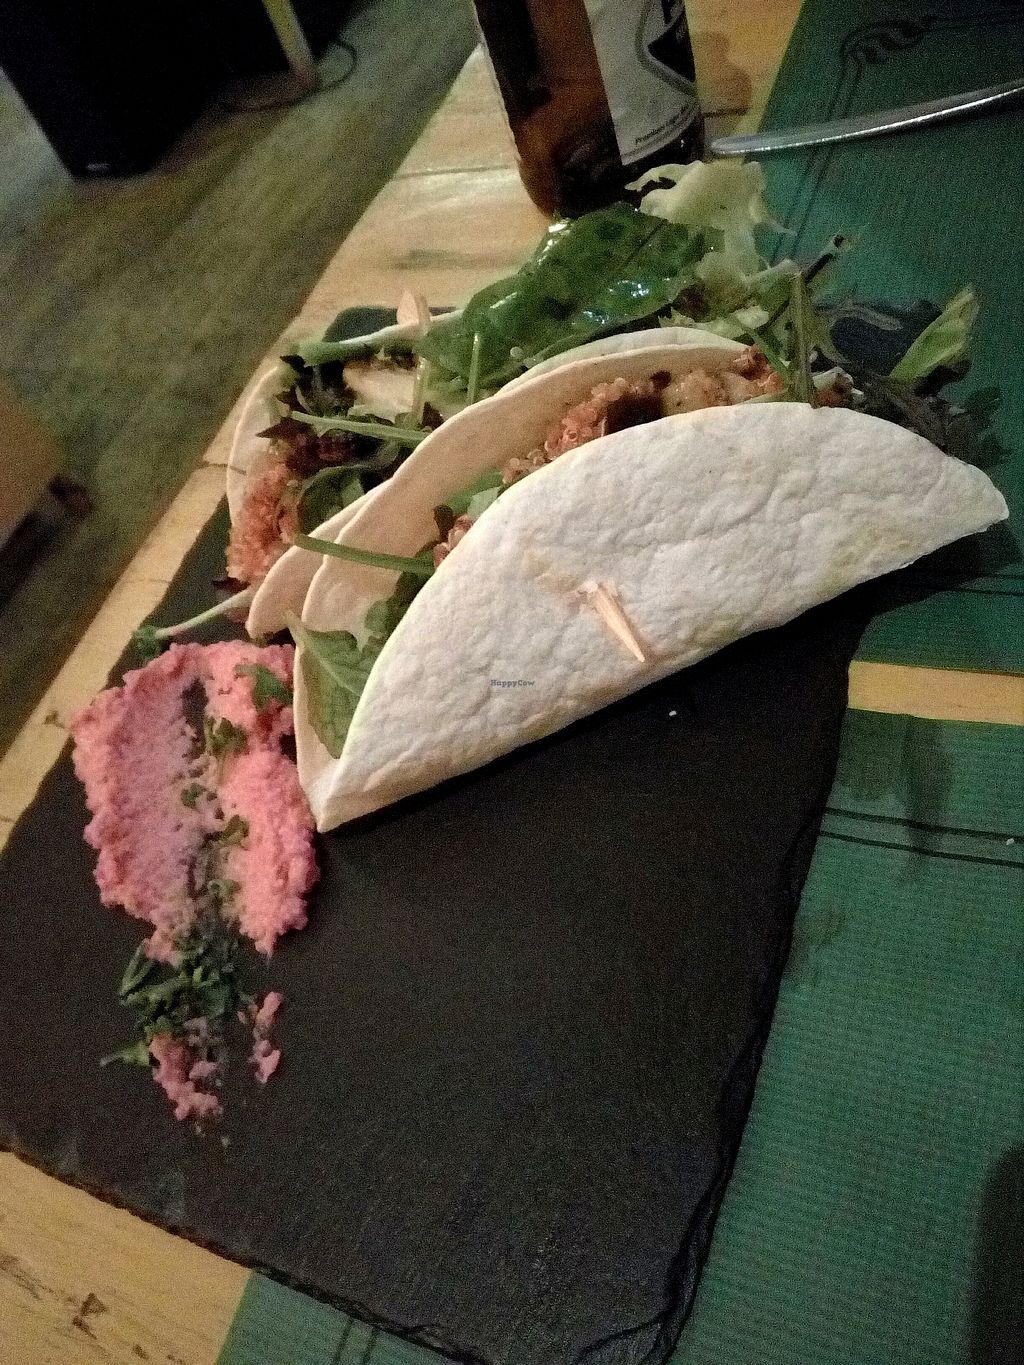 """Photo of Armonia  by <a href=""""/members/profile/wyrd"""">wyrd</a> <br/>Quinoa burrito with hummus <br/> June 20, 2017  - <a href='/contact/abuse/image/60120/271367'>Report</a>"""